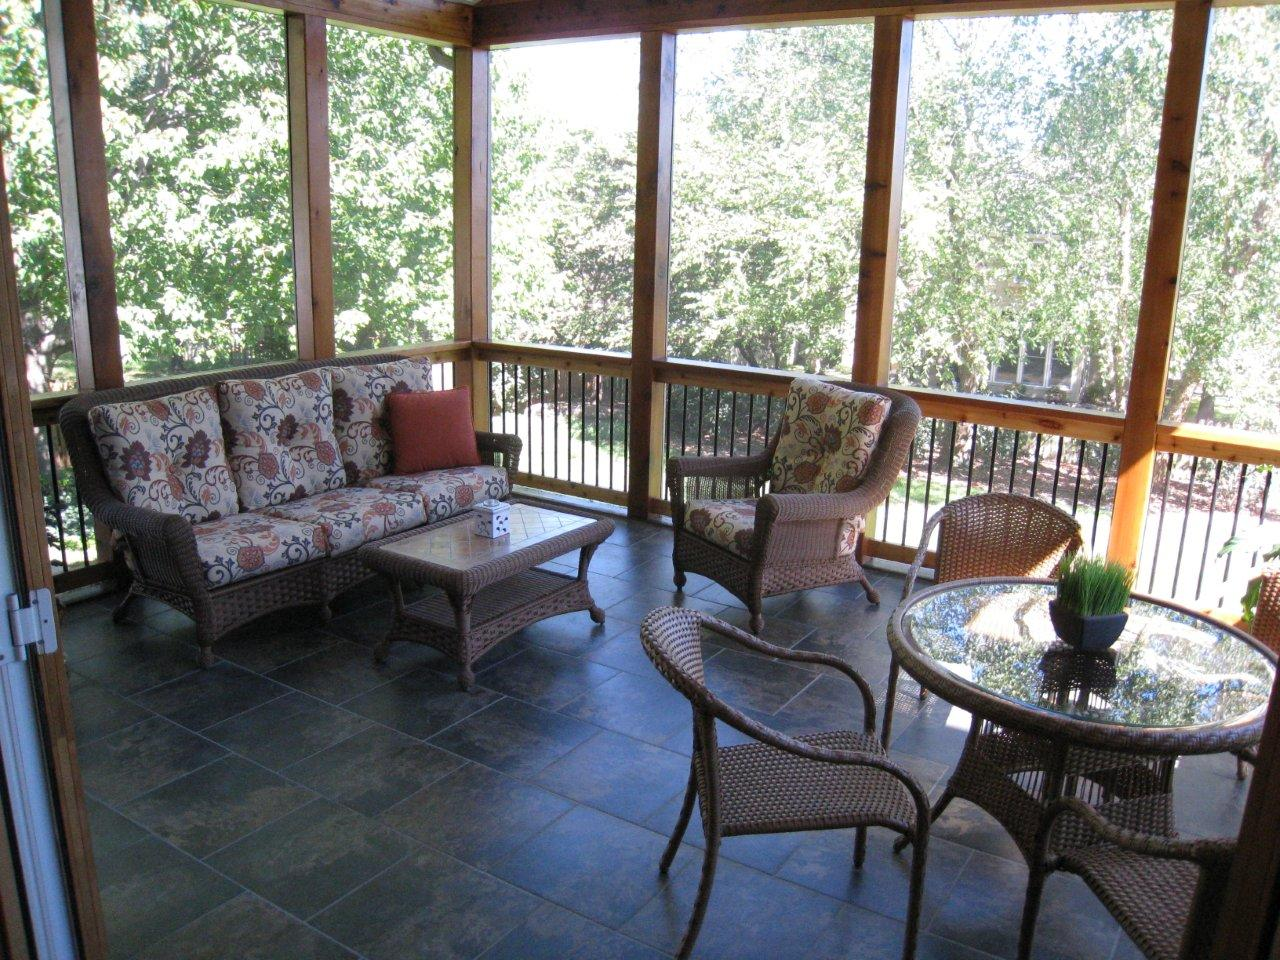 10ideas about Porch Flooring on Pinterest Painted Porch